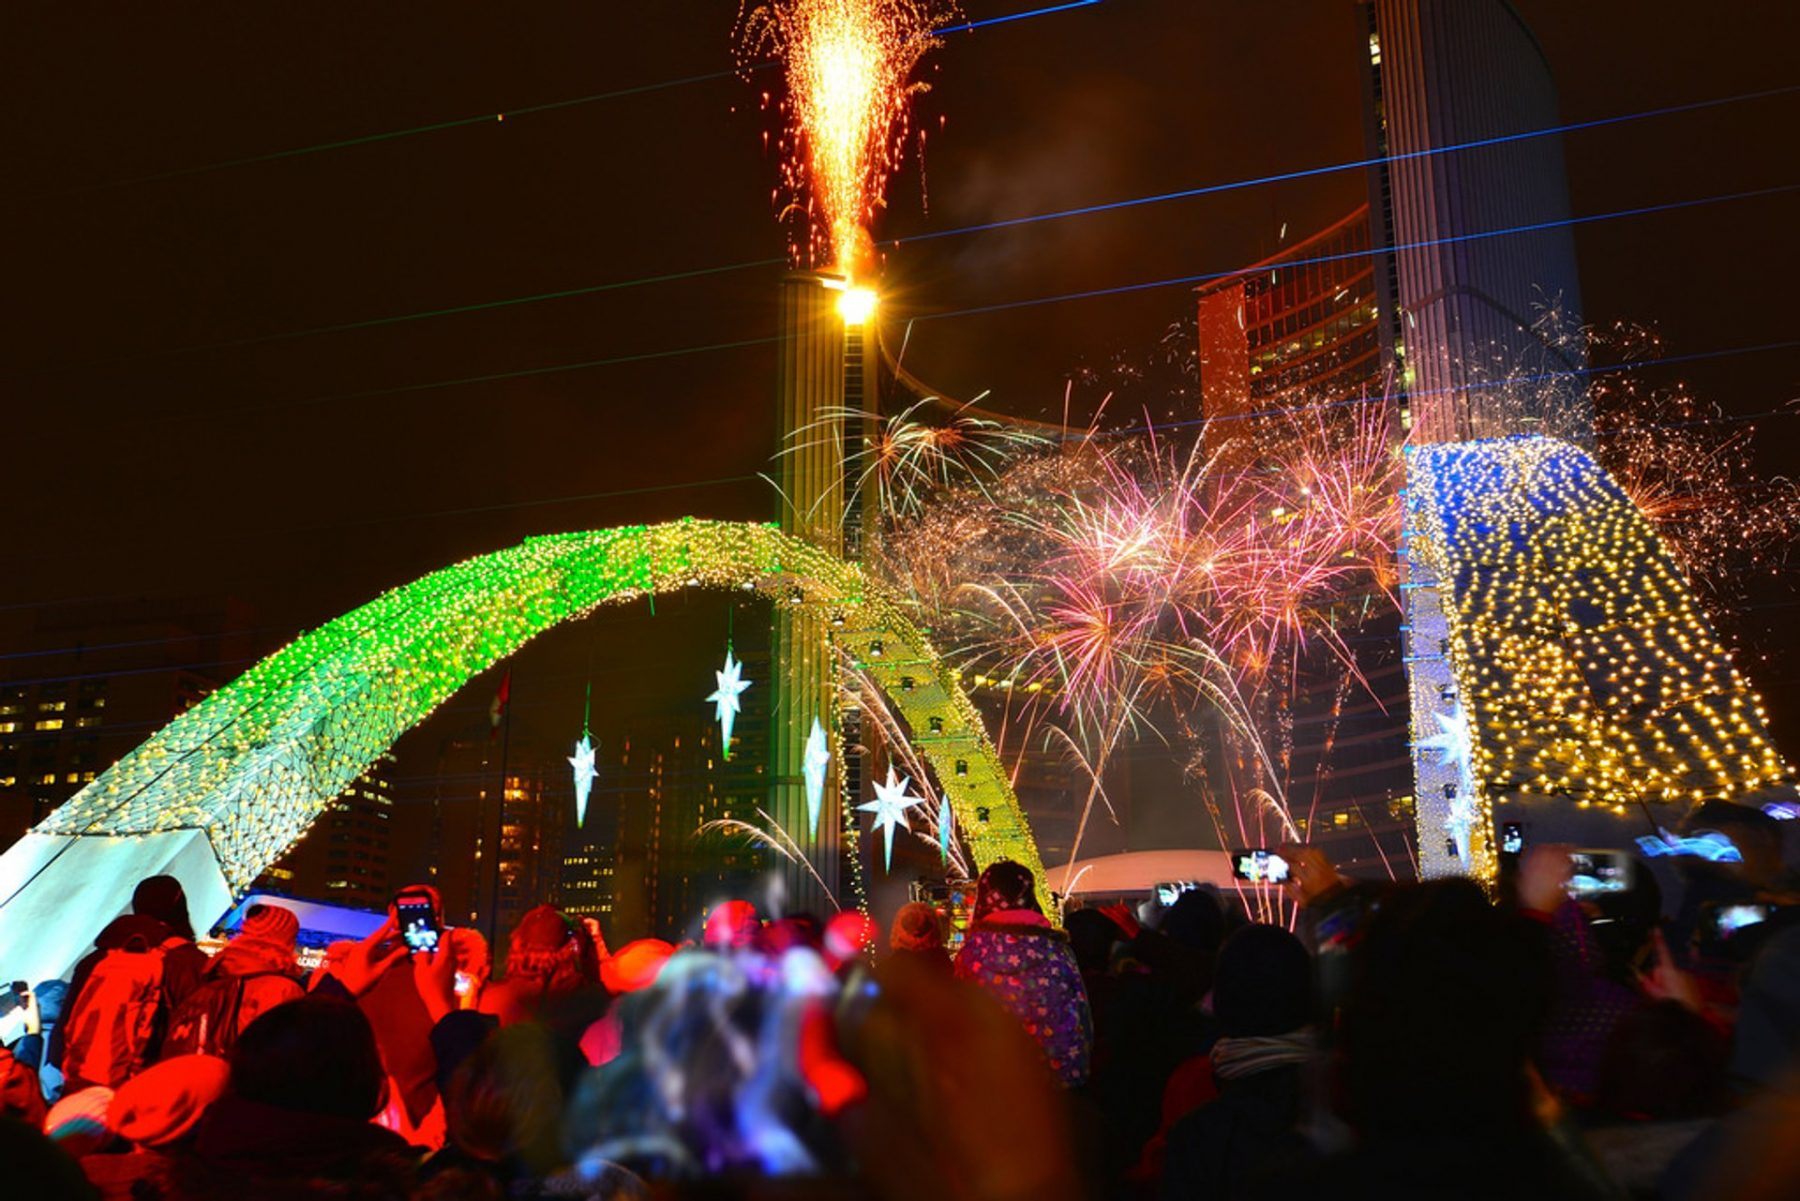 Fireworks at Nathan Phillips Square during the Cavalcade of Lights